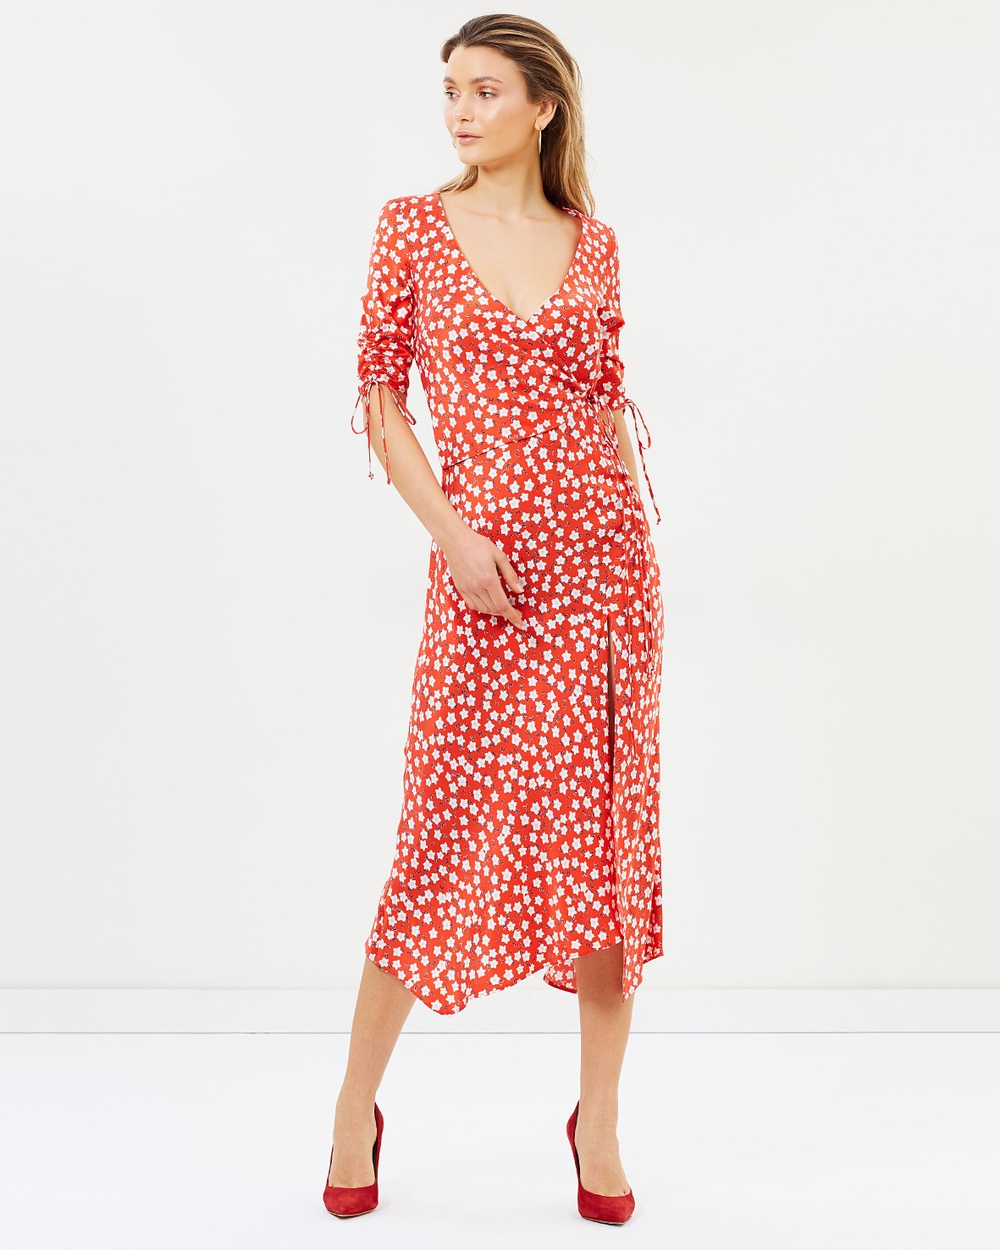 Bec & Bridge In Your Dreams Midi Dress Printed Dresses Print In Your Dreams Midi Dress